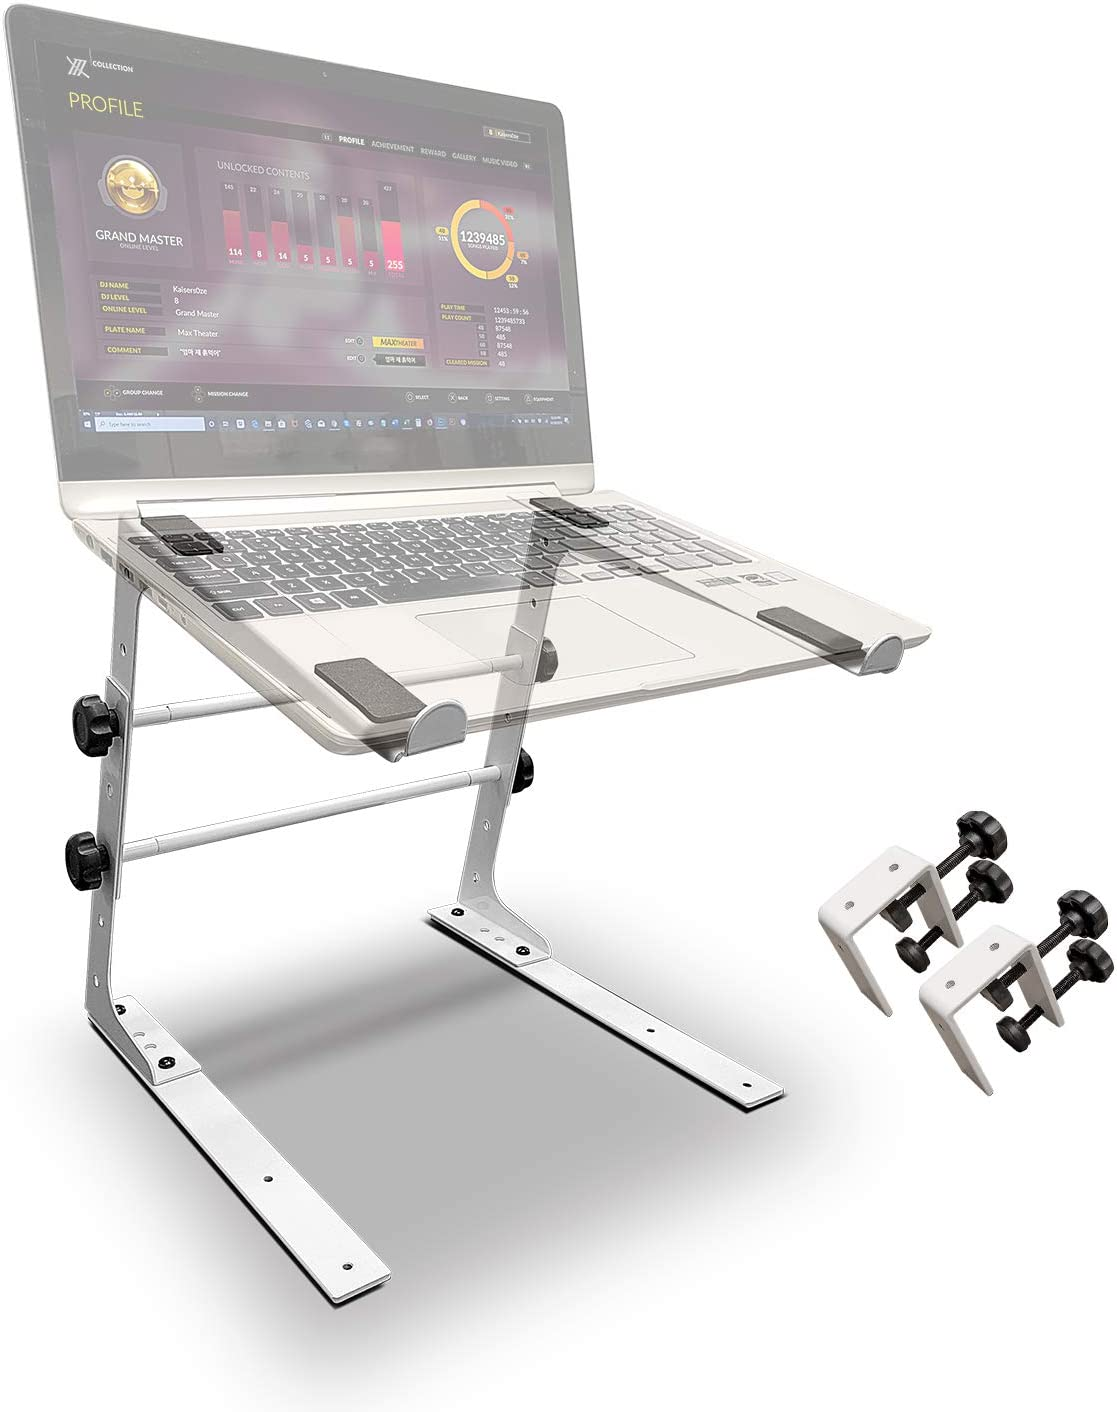 AxcessAbles LTS-02 DJ Laptop Table Stand with Adjustable Height/Width and Optional Table Clamps for DJ, Gaming, Streaming, Standing Desk, Desk